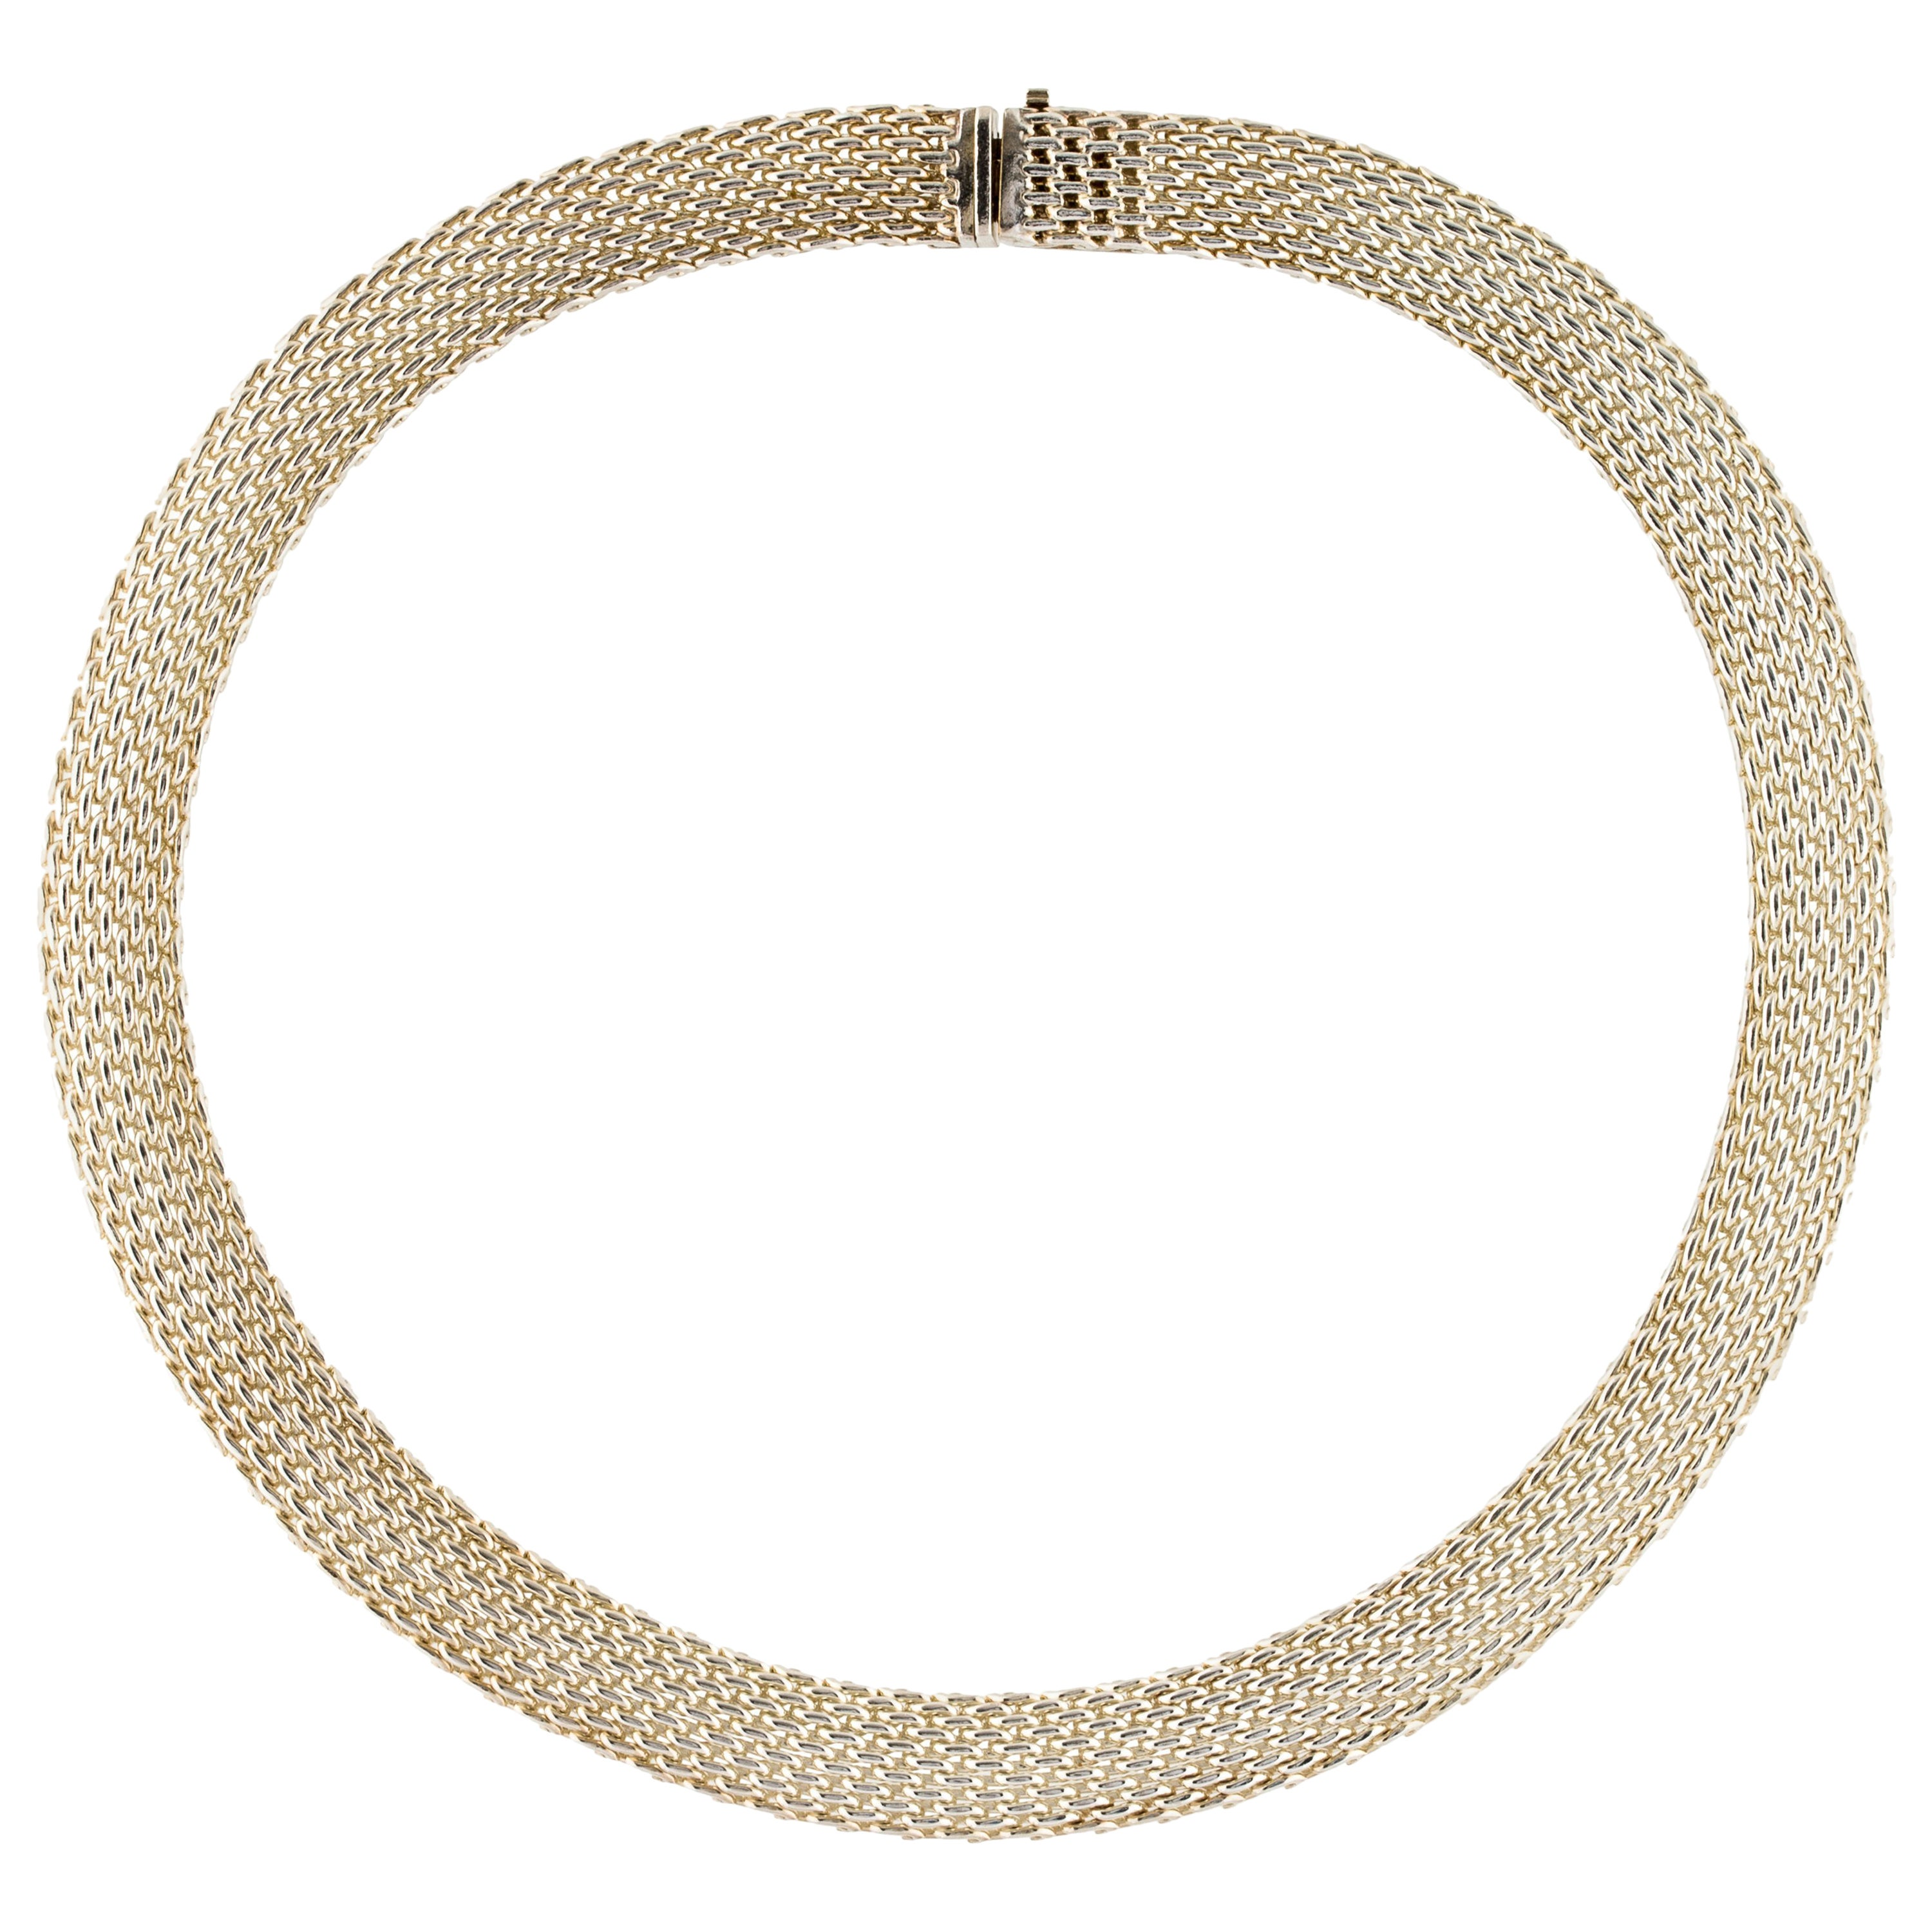 f6f0c81dea6 Tiffany and Co. Sterling Silver Mesh Evening Collar Choker Necklace For  Sale at 1stdibs